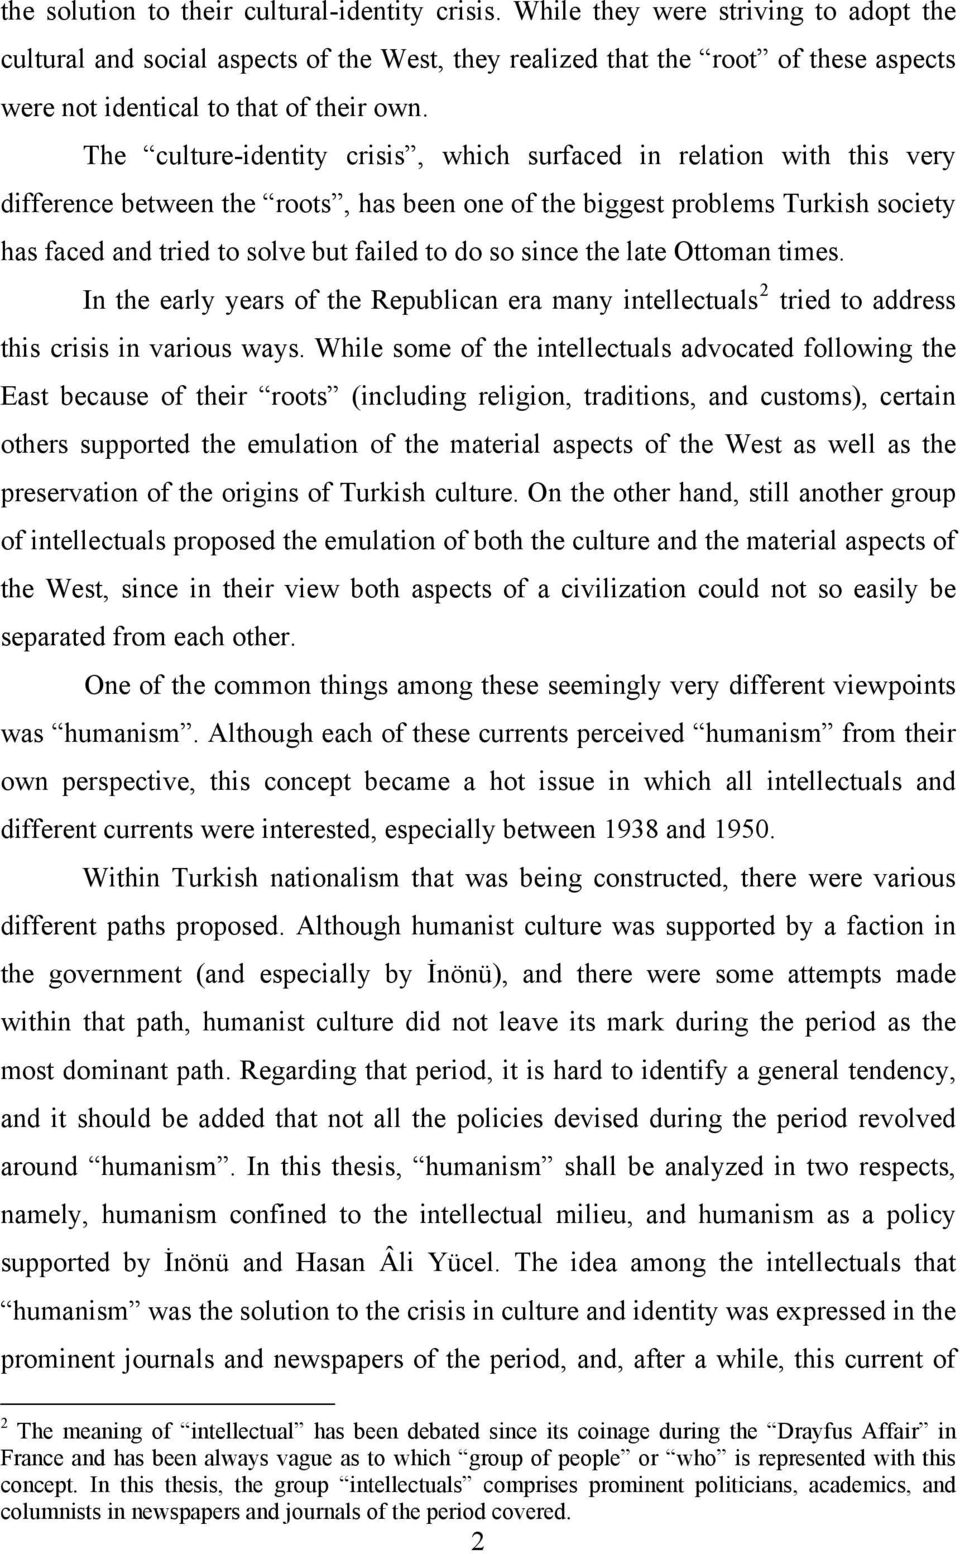 The culture-identity crisis, which surfaced in relation with this very difference between the roots, has been one of the biggest problems Turkish society has faced and tried to solve but failed to do